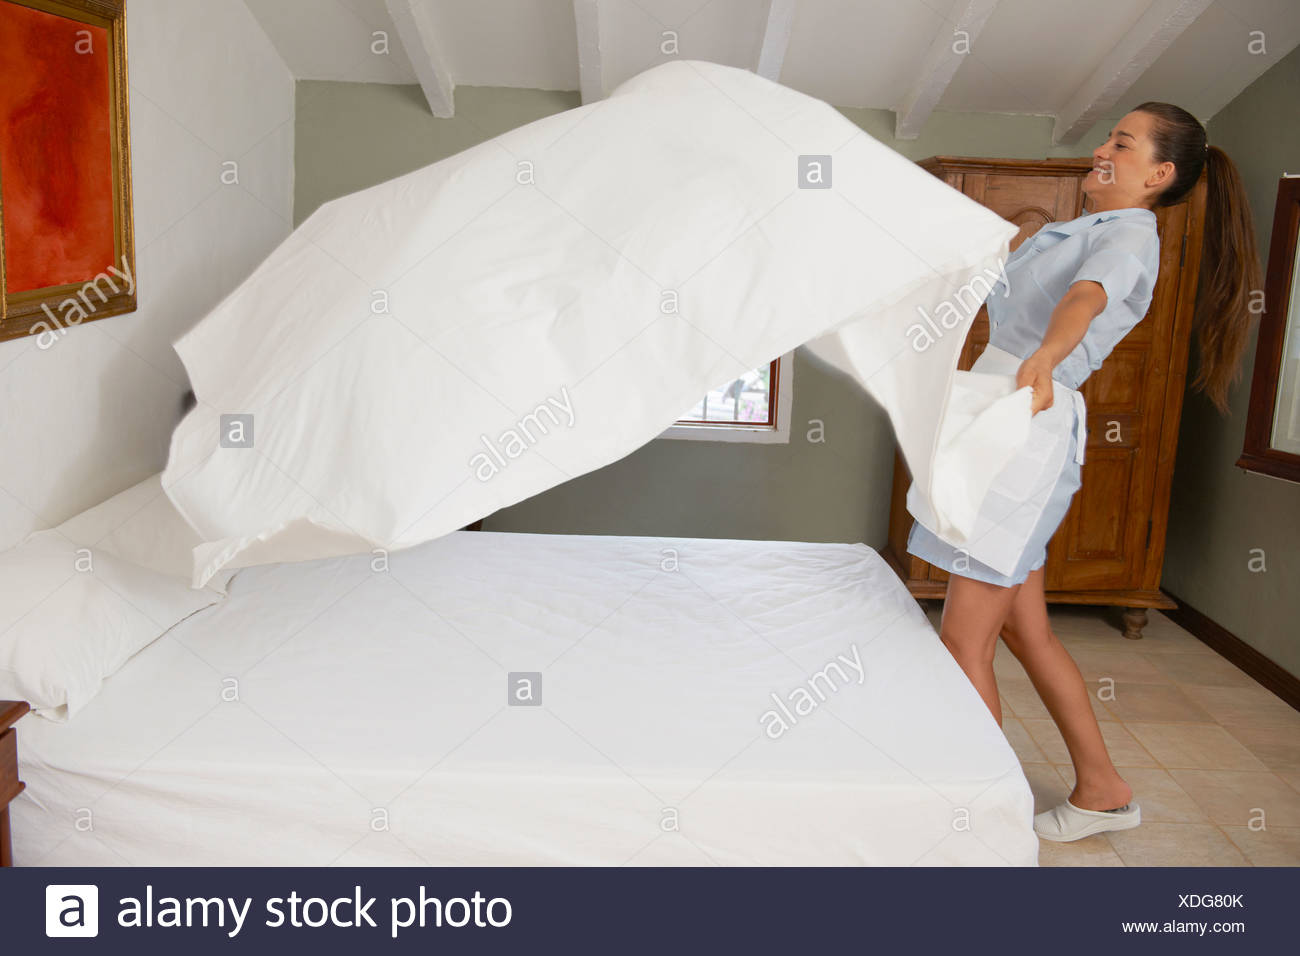 Hotel maid putting throwing sheet on bed - Stock Image